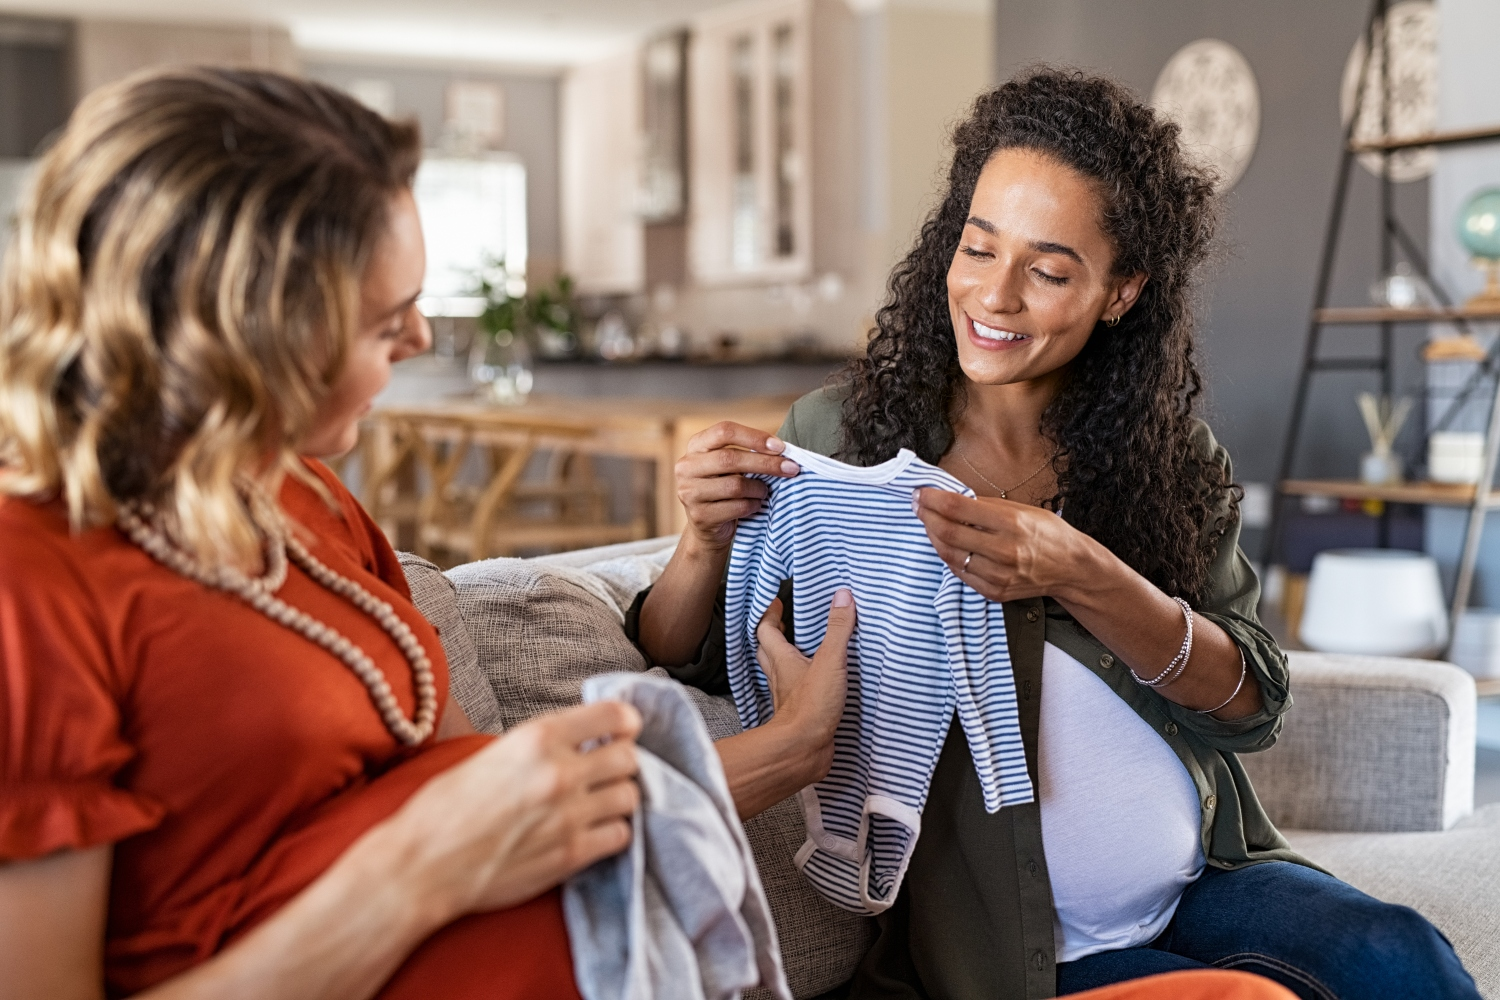 The Best Baby Shower Gifts For a First-Time Parent